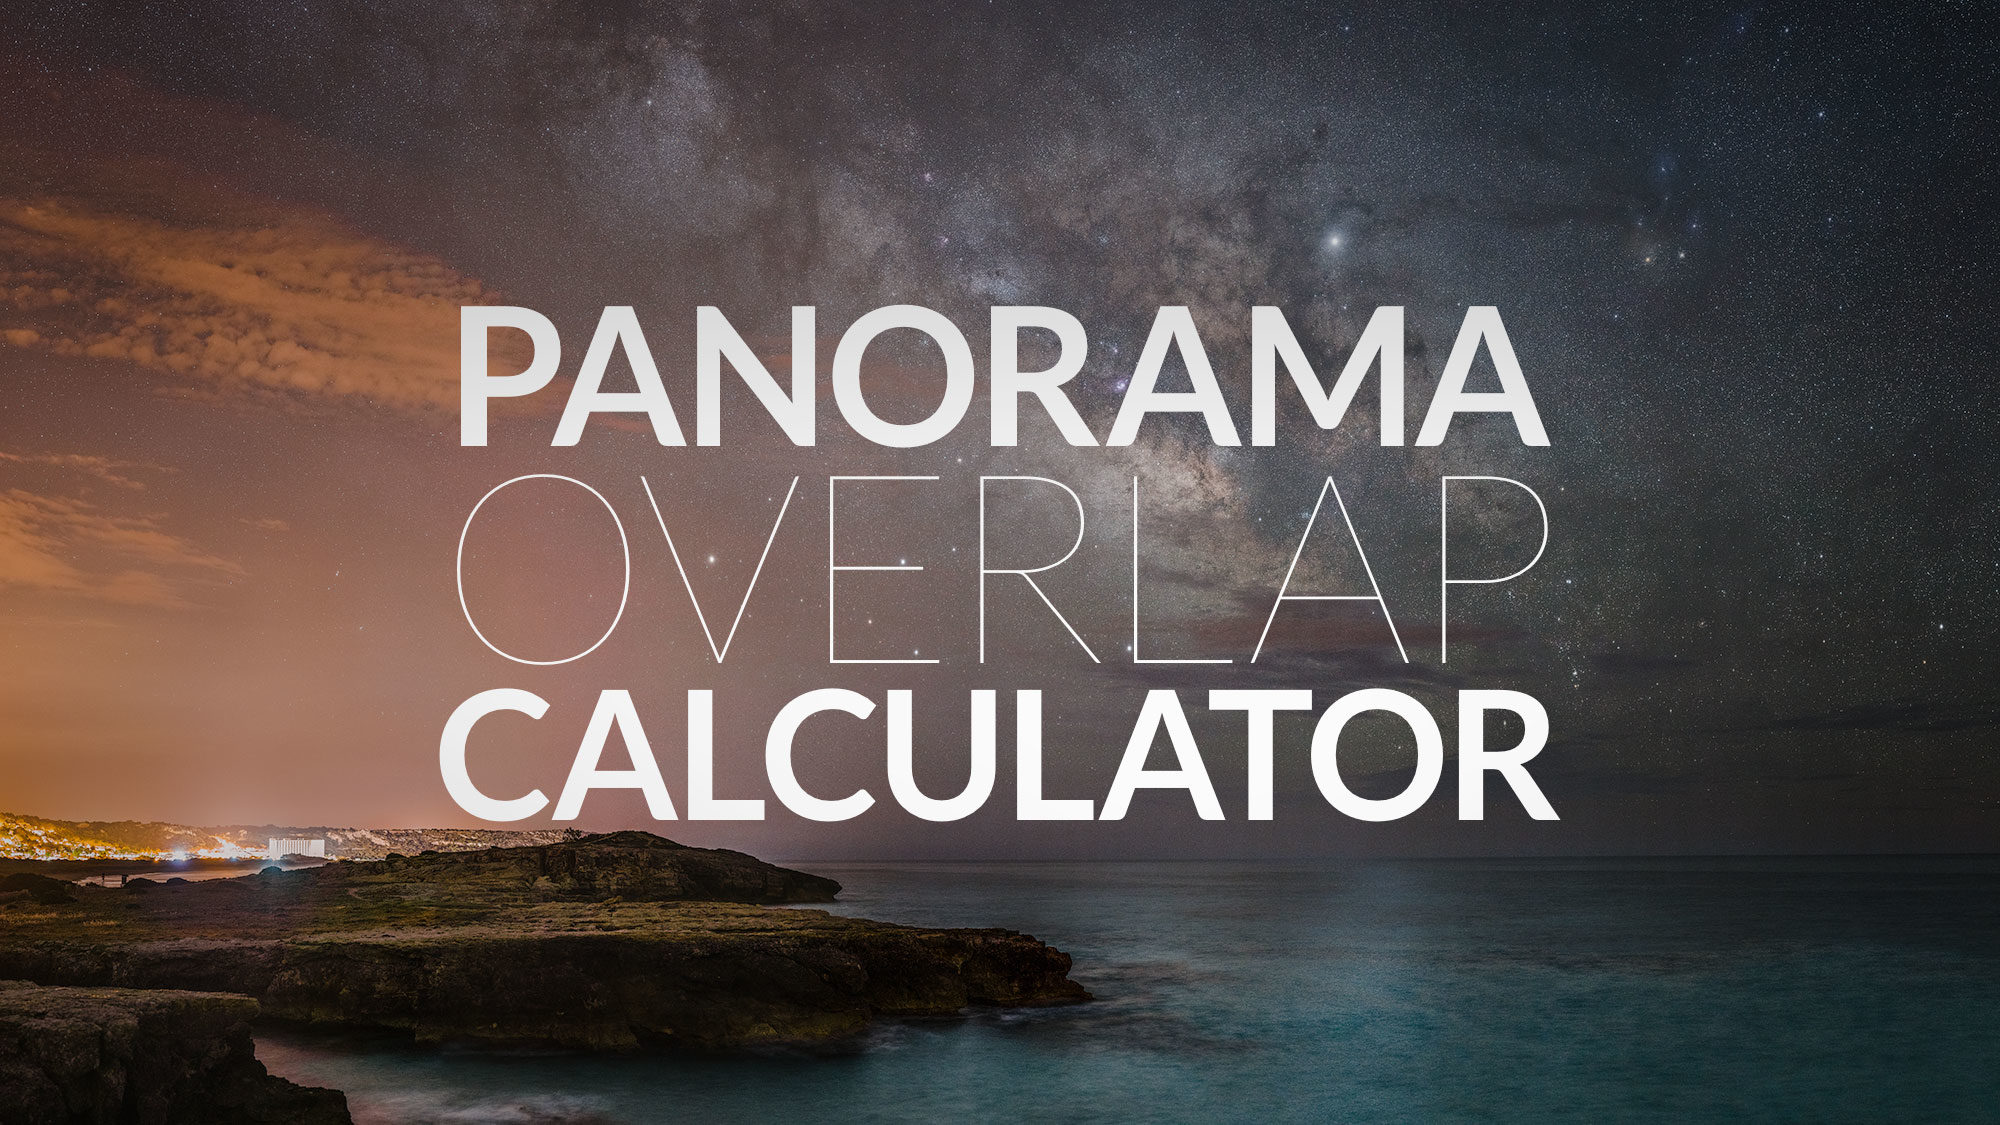 Panorama Overlap Calculator